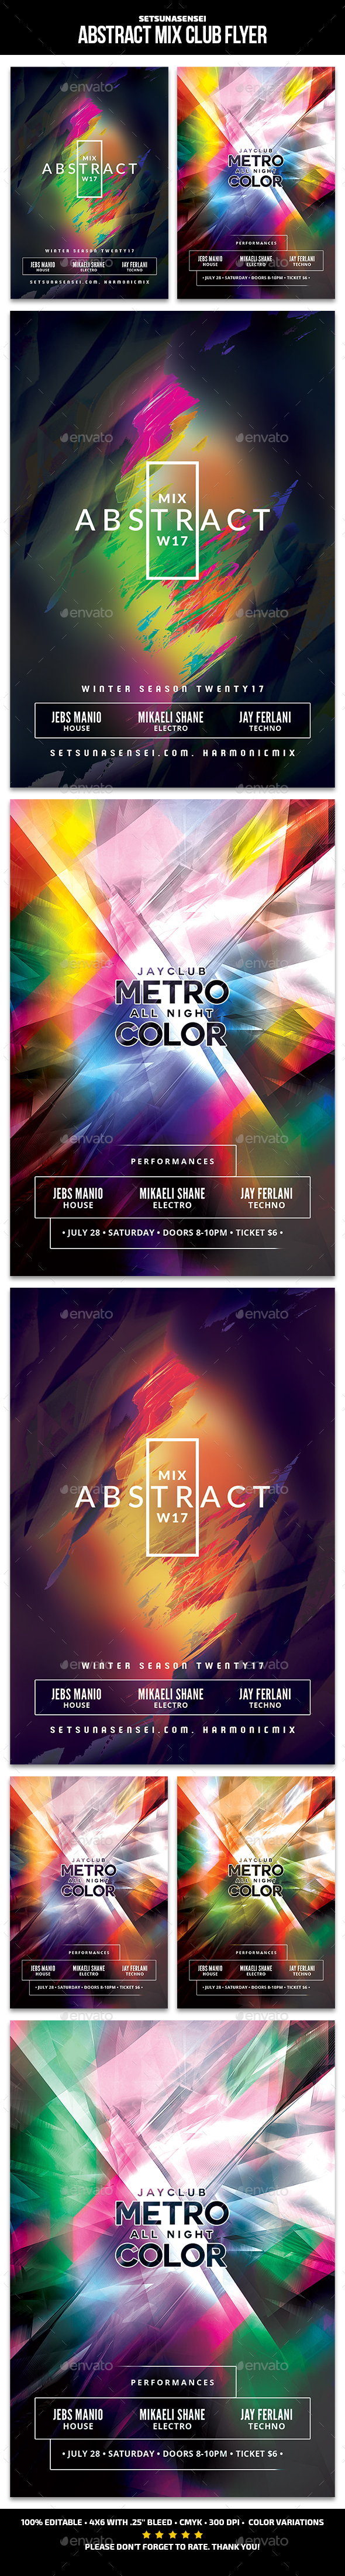 Abstract Mix Club Flyer - Clubs & Parties Events